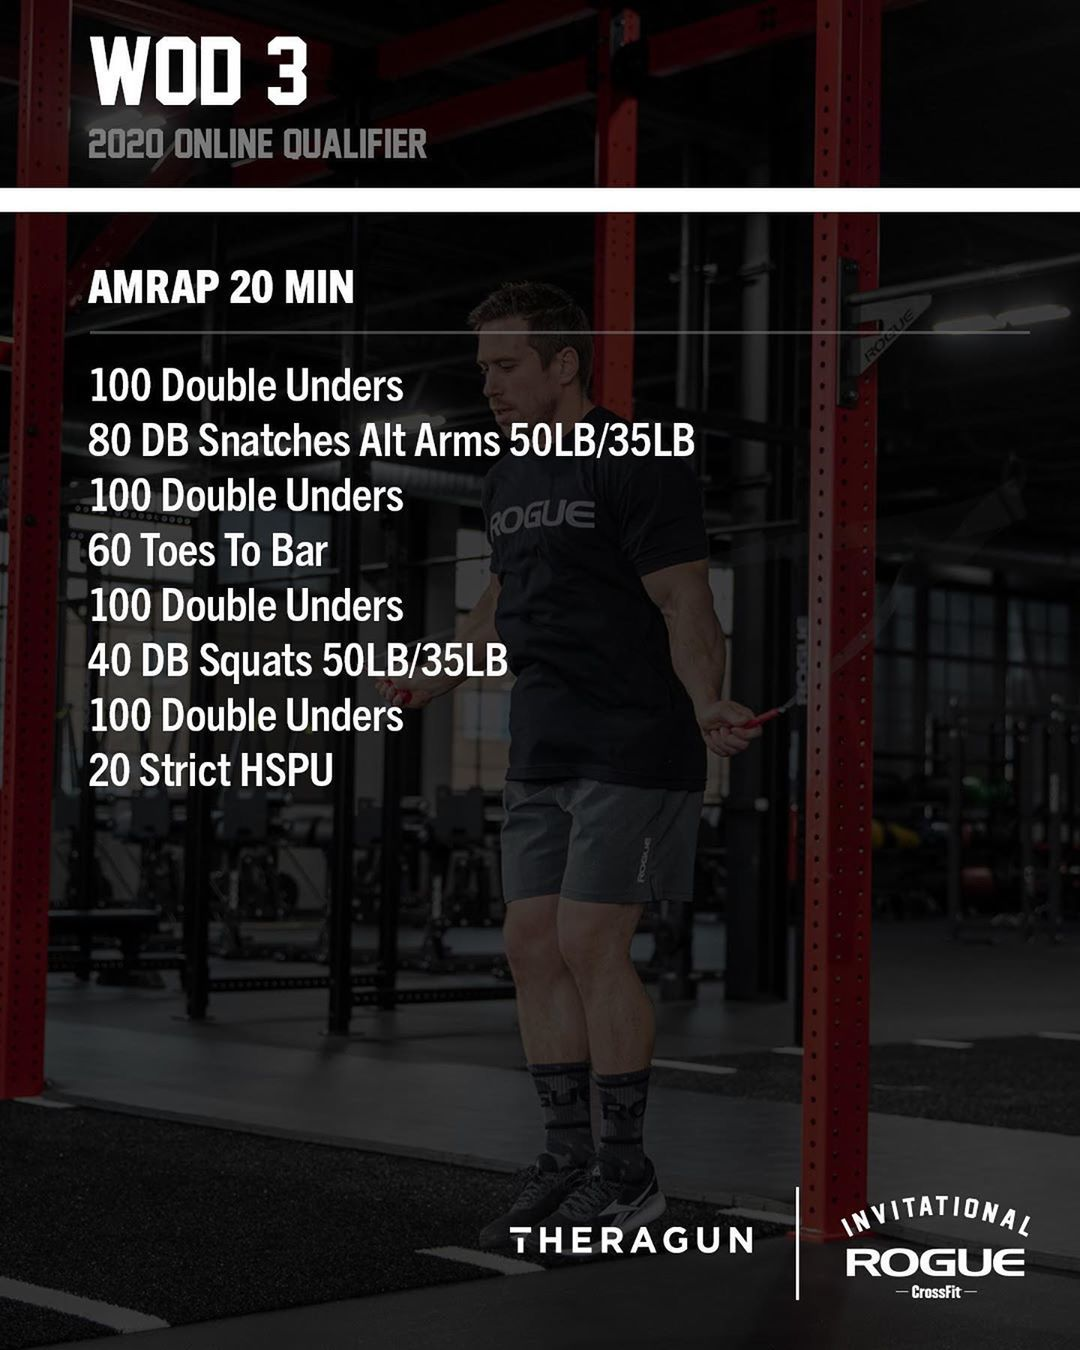 Rogue Invitational On Instagram Looking For An At Home Workout Here S Wod 3 From The 2020 Rogue Invitational Qualifier Swipe For The No Equipment Version G